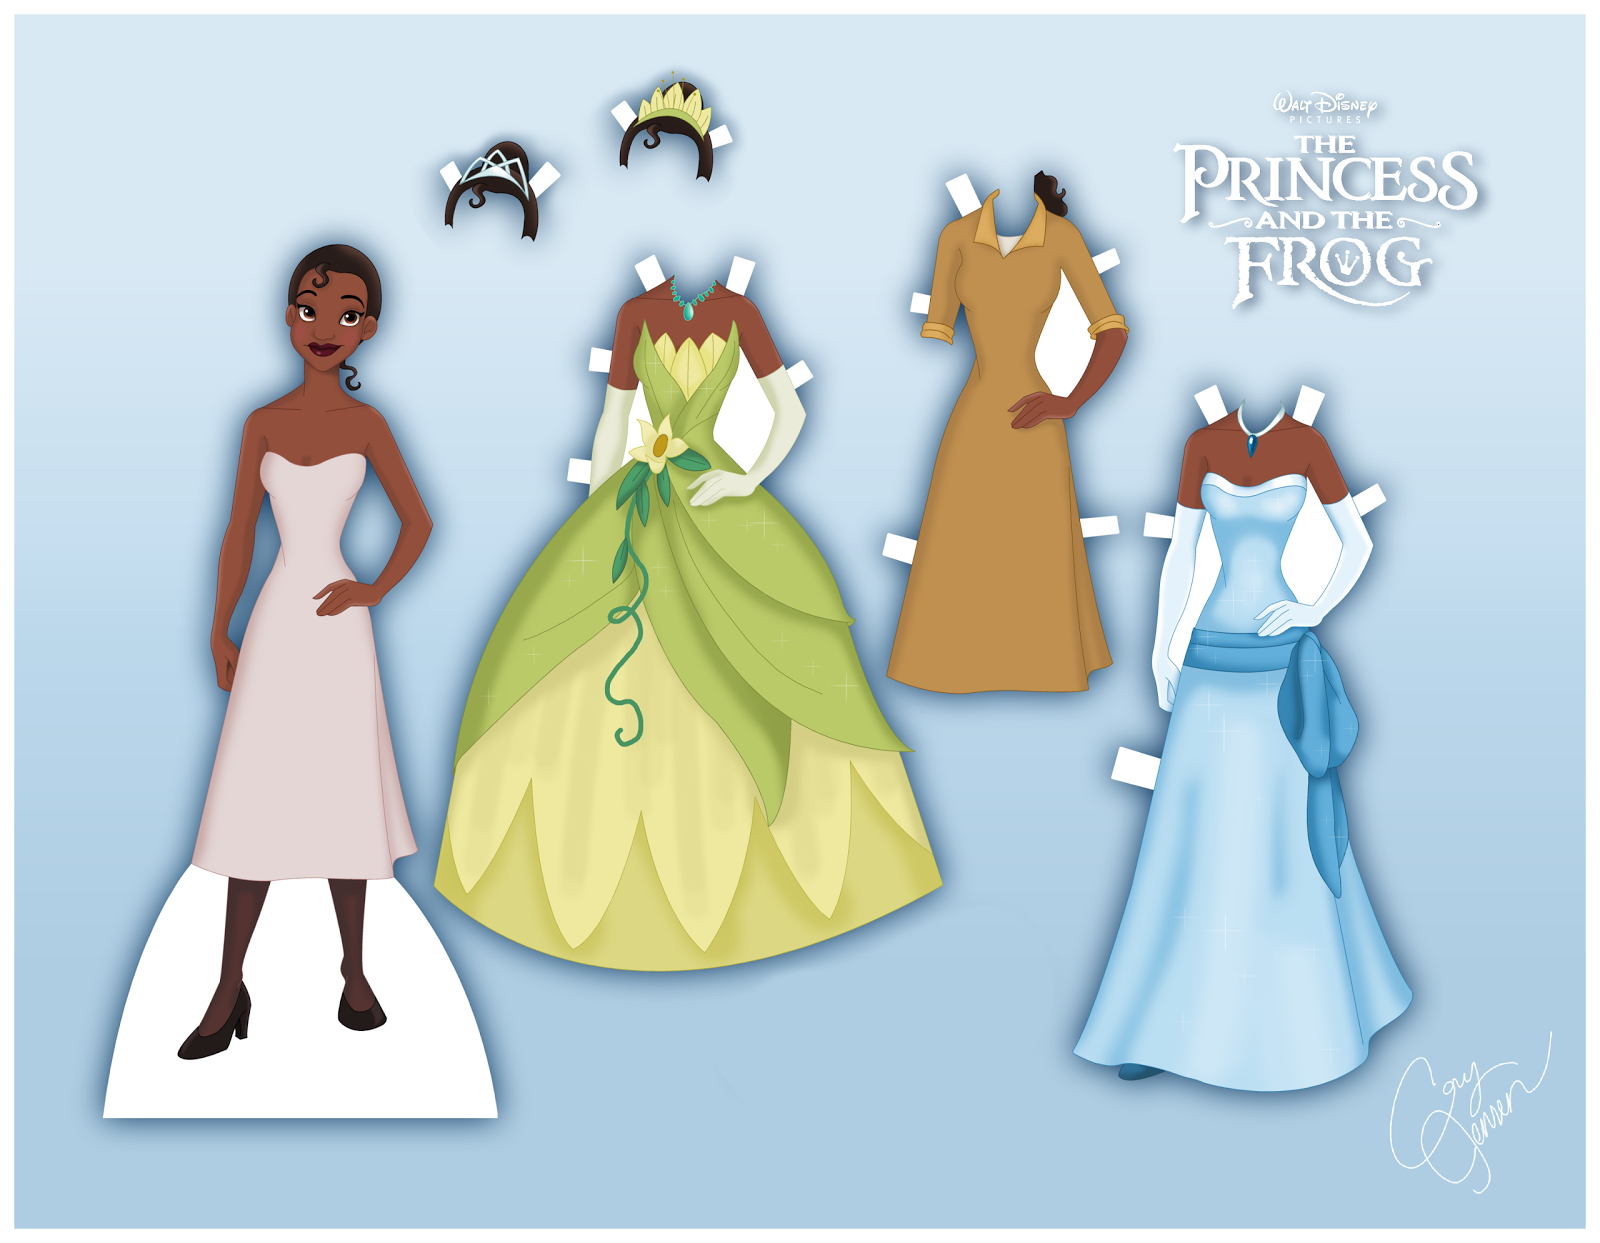 http://4.bp.blogspot.com/_Kh0CZuWd0T8/TL0DH_c2MGI/AAAAAAAAIt0/_zVJFk__Xd8/s1600/princess+tiana+and+the+frog+paper+doll.png